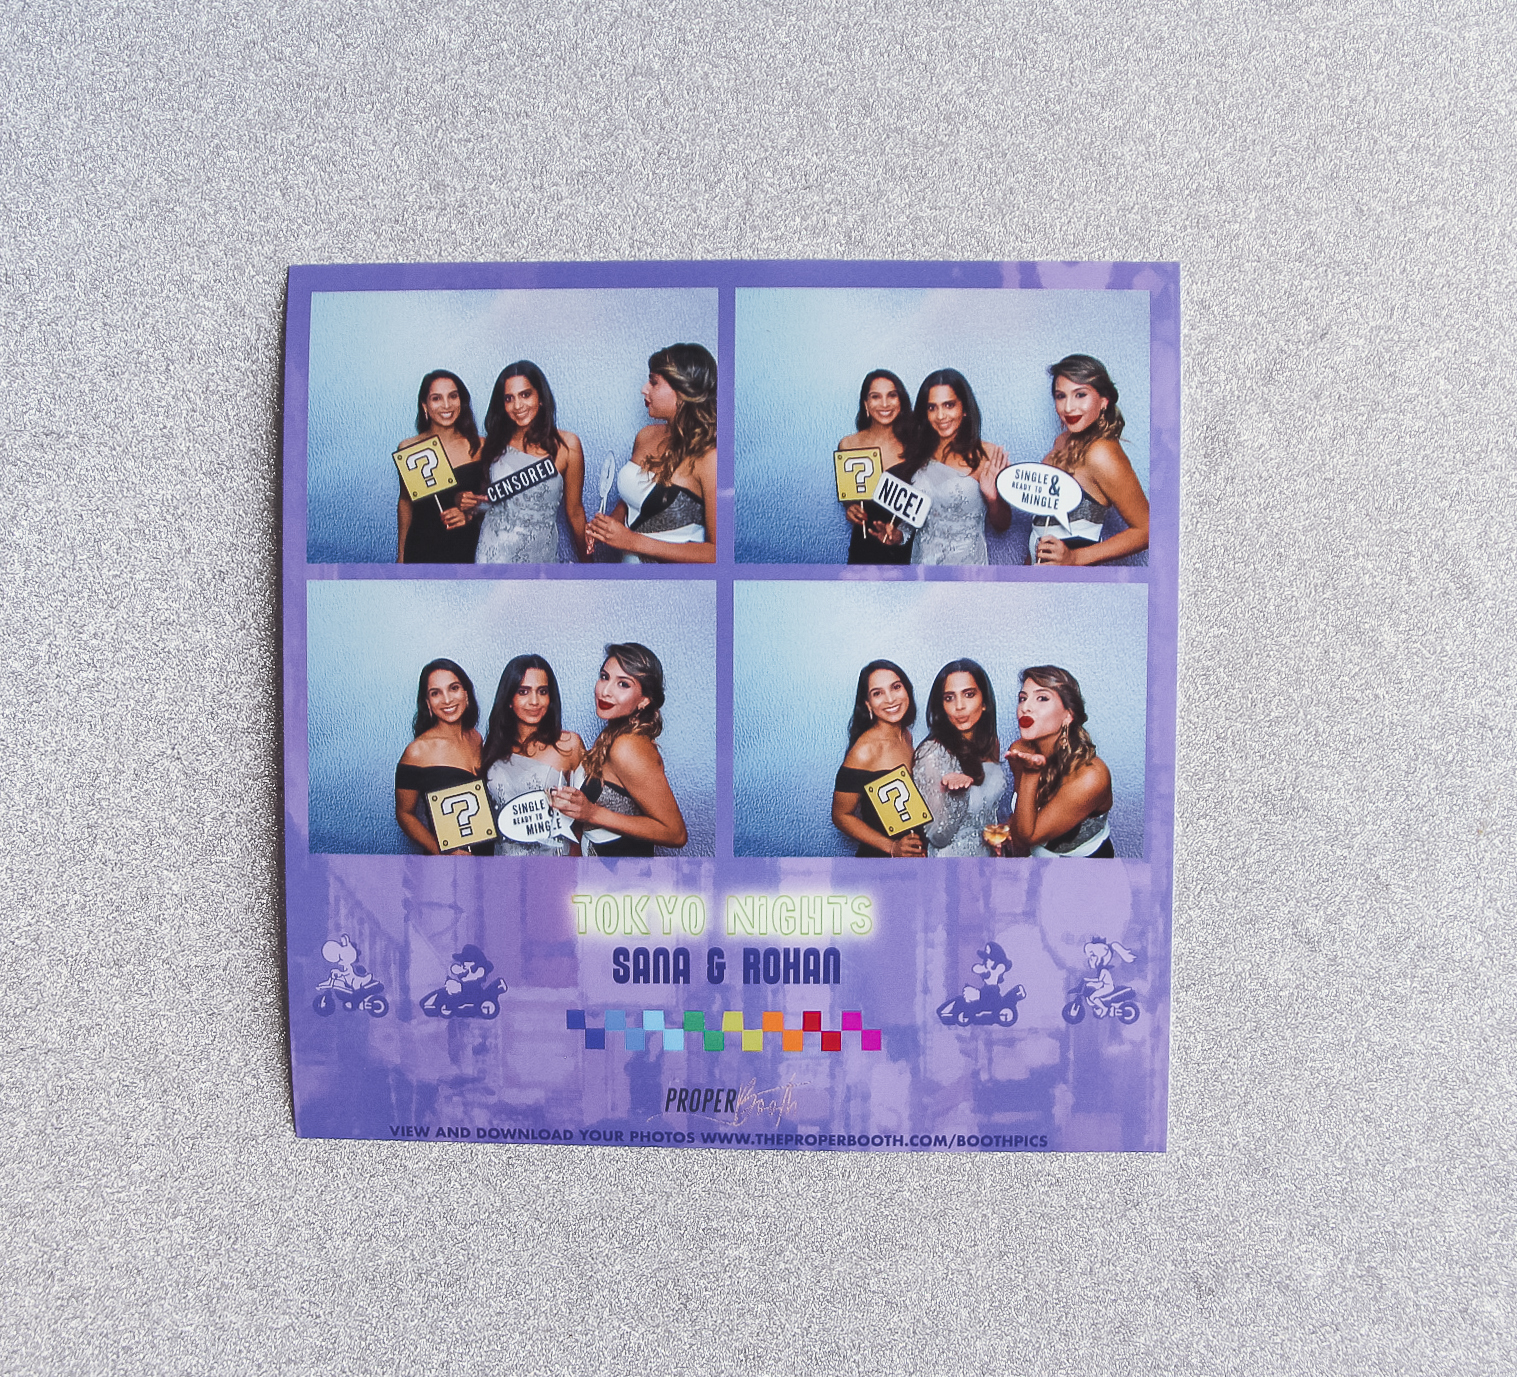 The Proper Booth Print Out Example-6.jpg